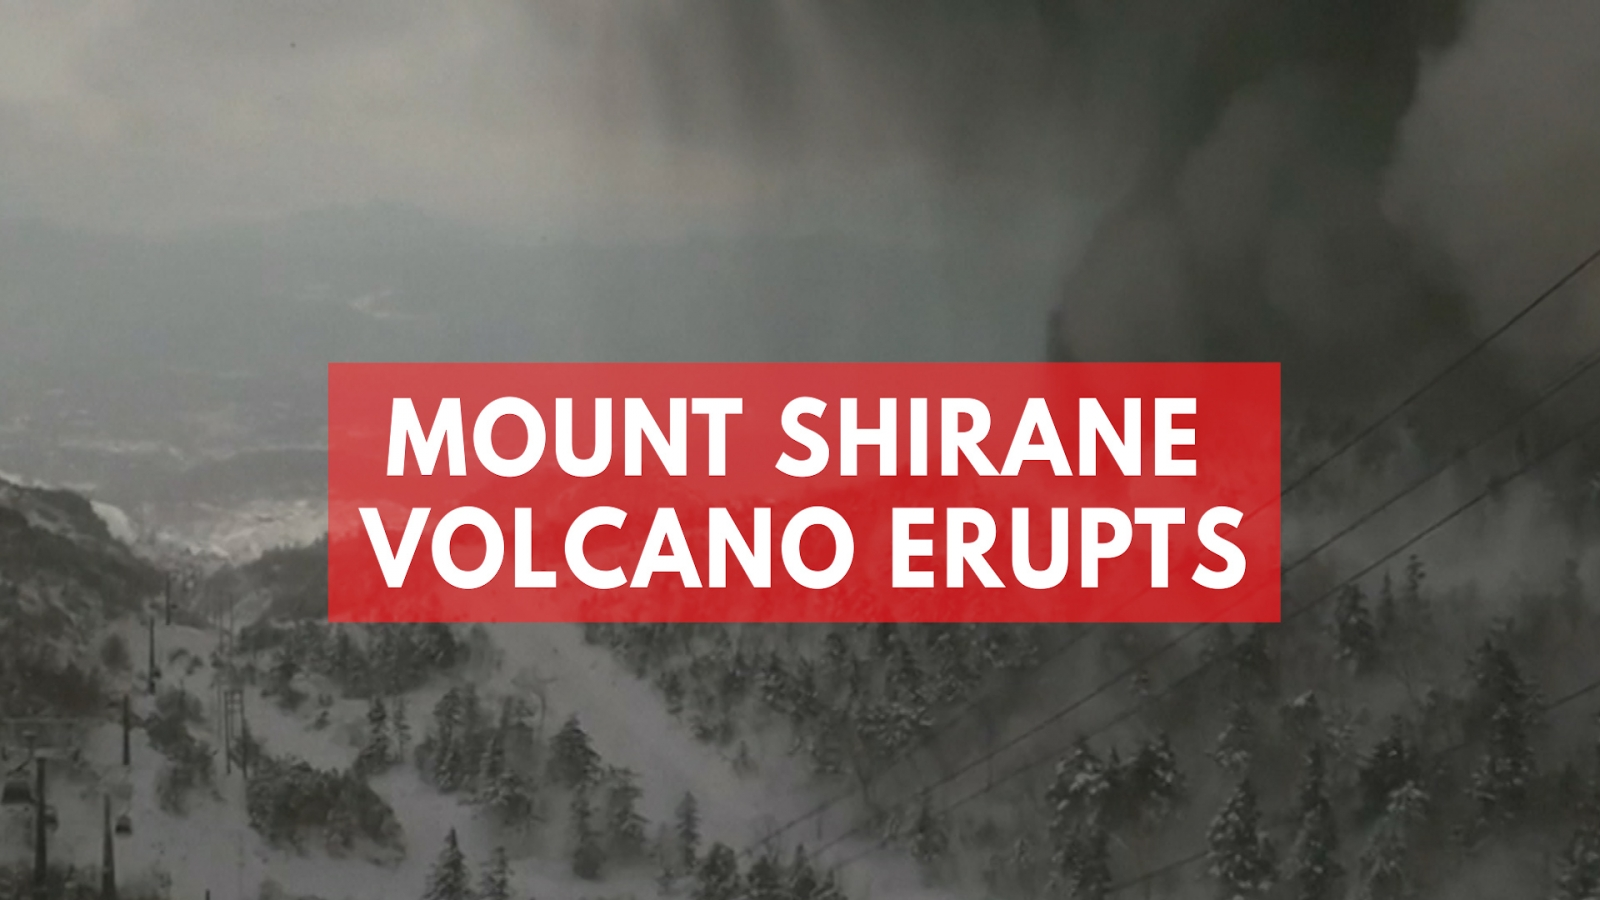 soldier-killed-and-skiers-injured-after-mount-shirane-volcano-erupts-in-japan-triggering-avalanche